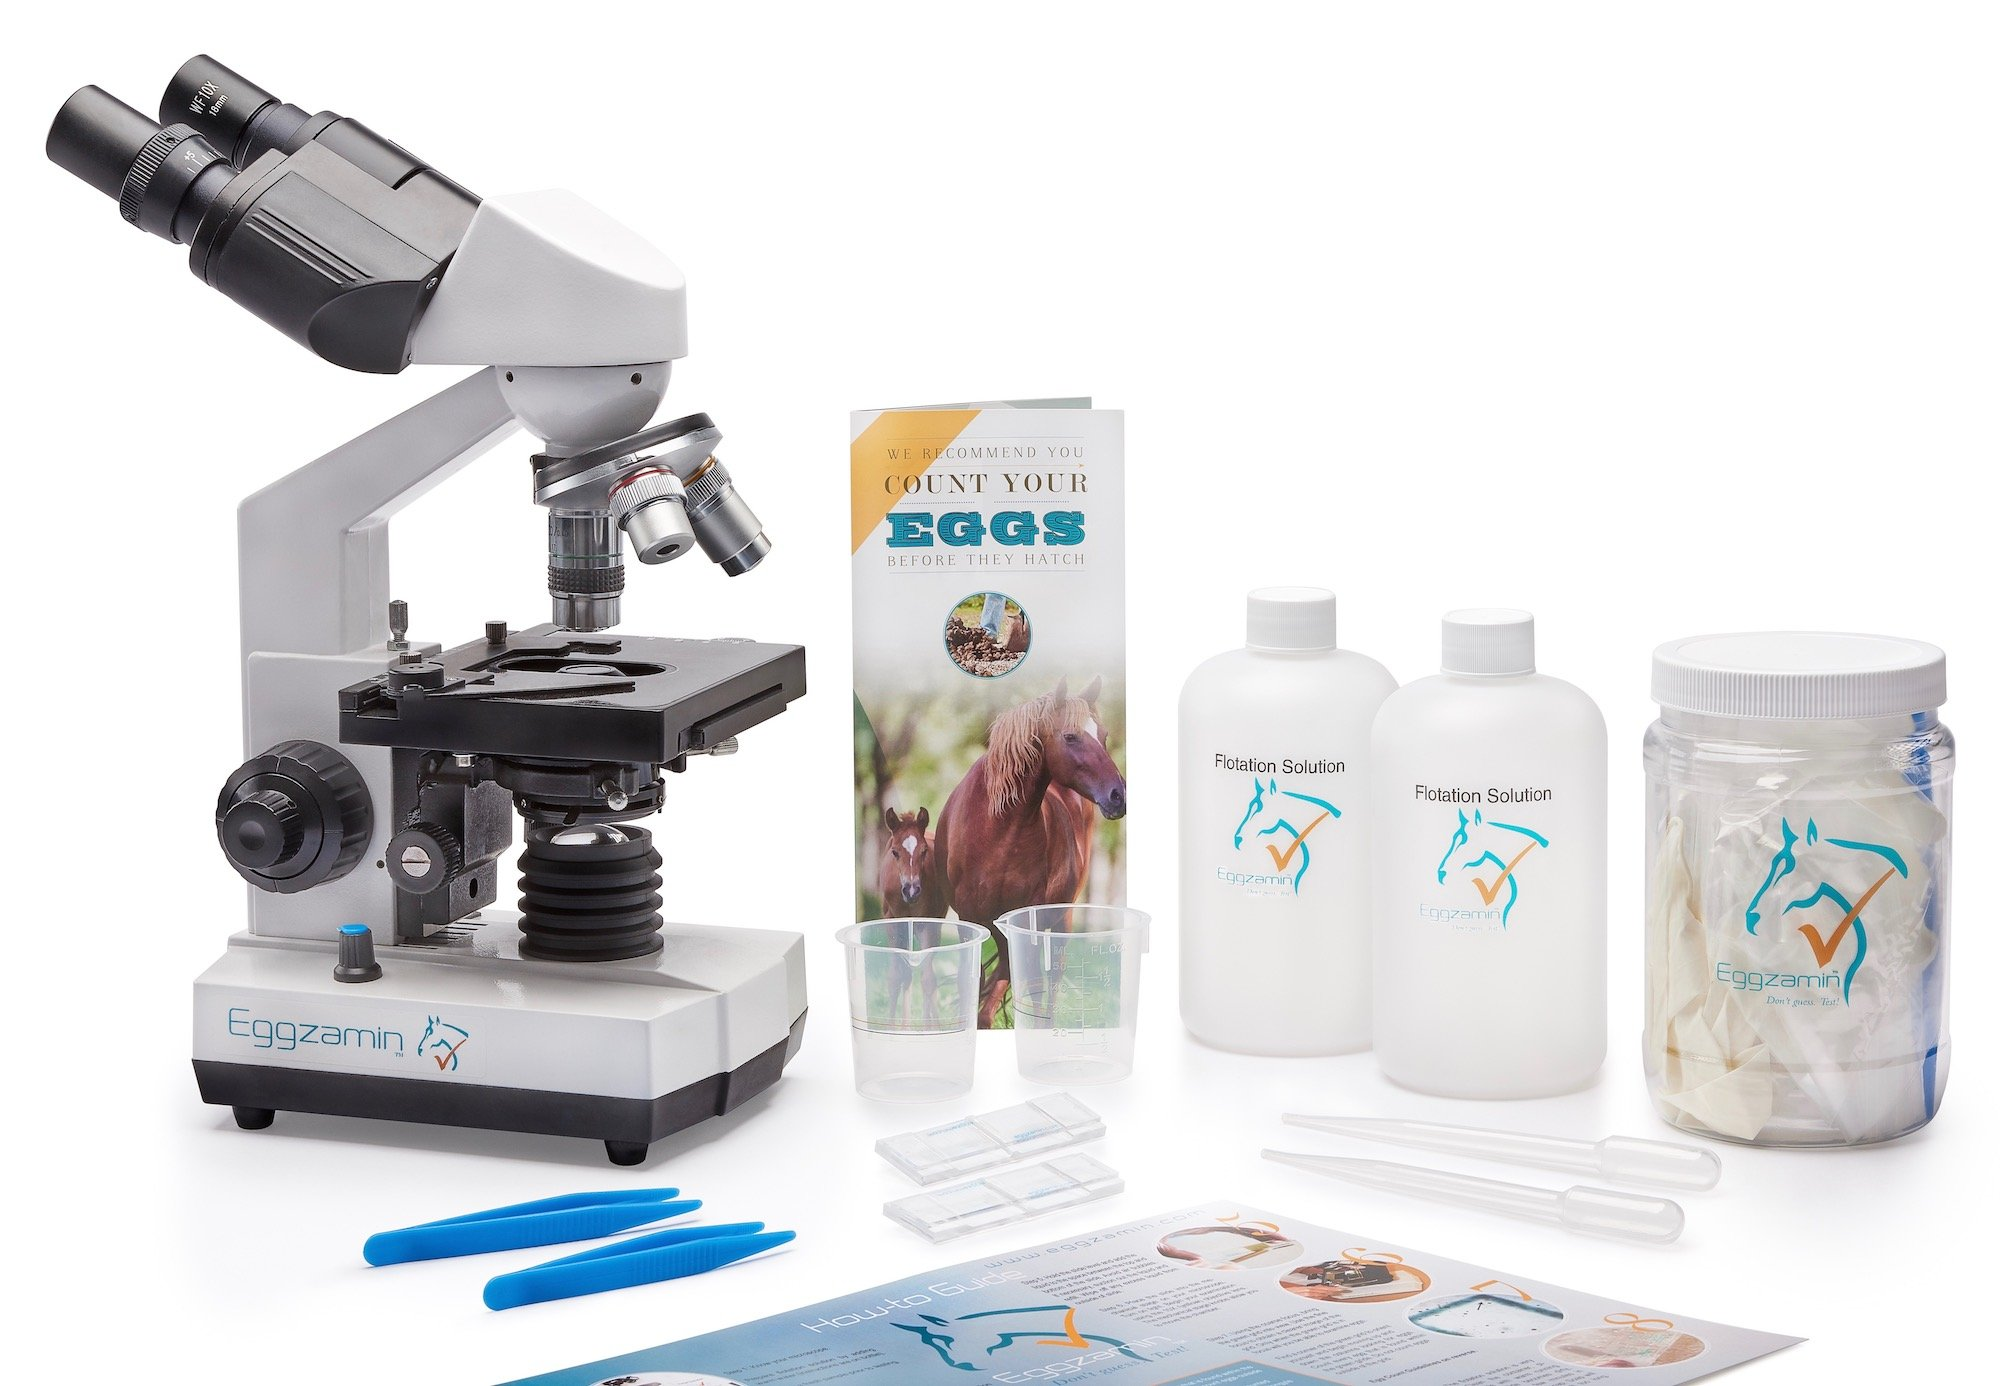 Professional Microscope Kit for Fecal Egg Count, by Eggzamin. Binocular Microscope and Accessories for Conducting Fecal Egg Count. Everything you need to test your animals for parasites. Instructions by Eggzamin